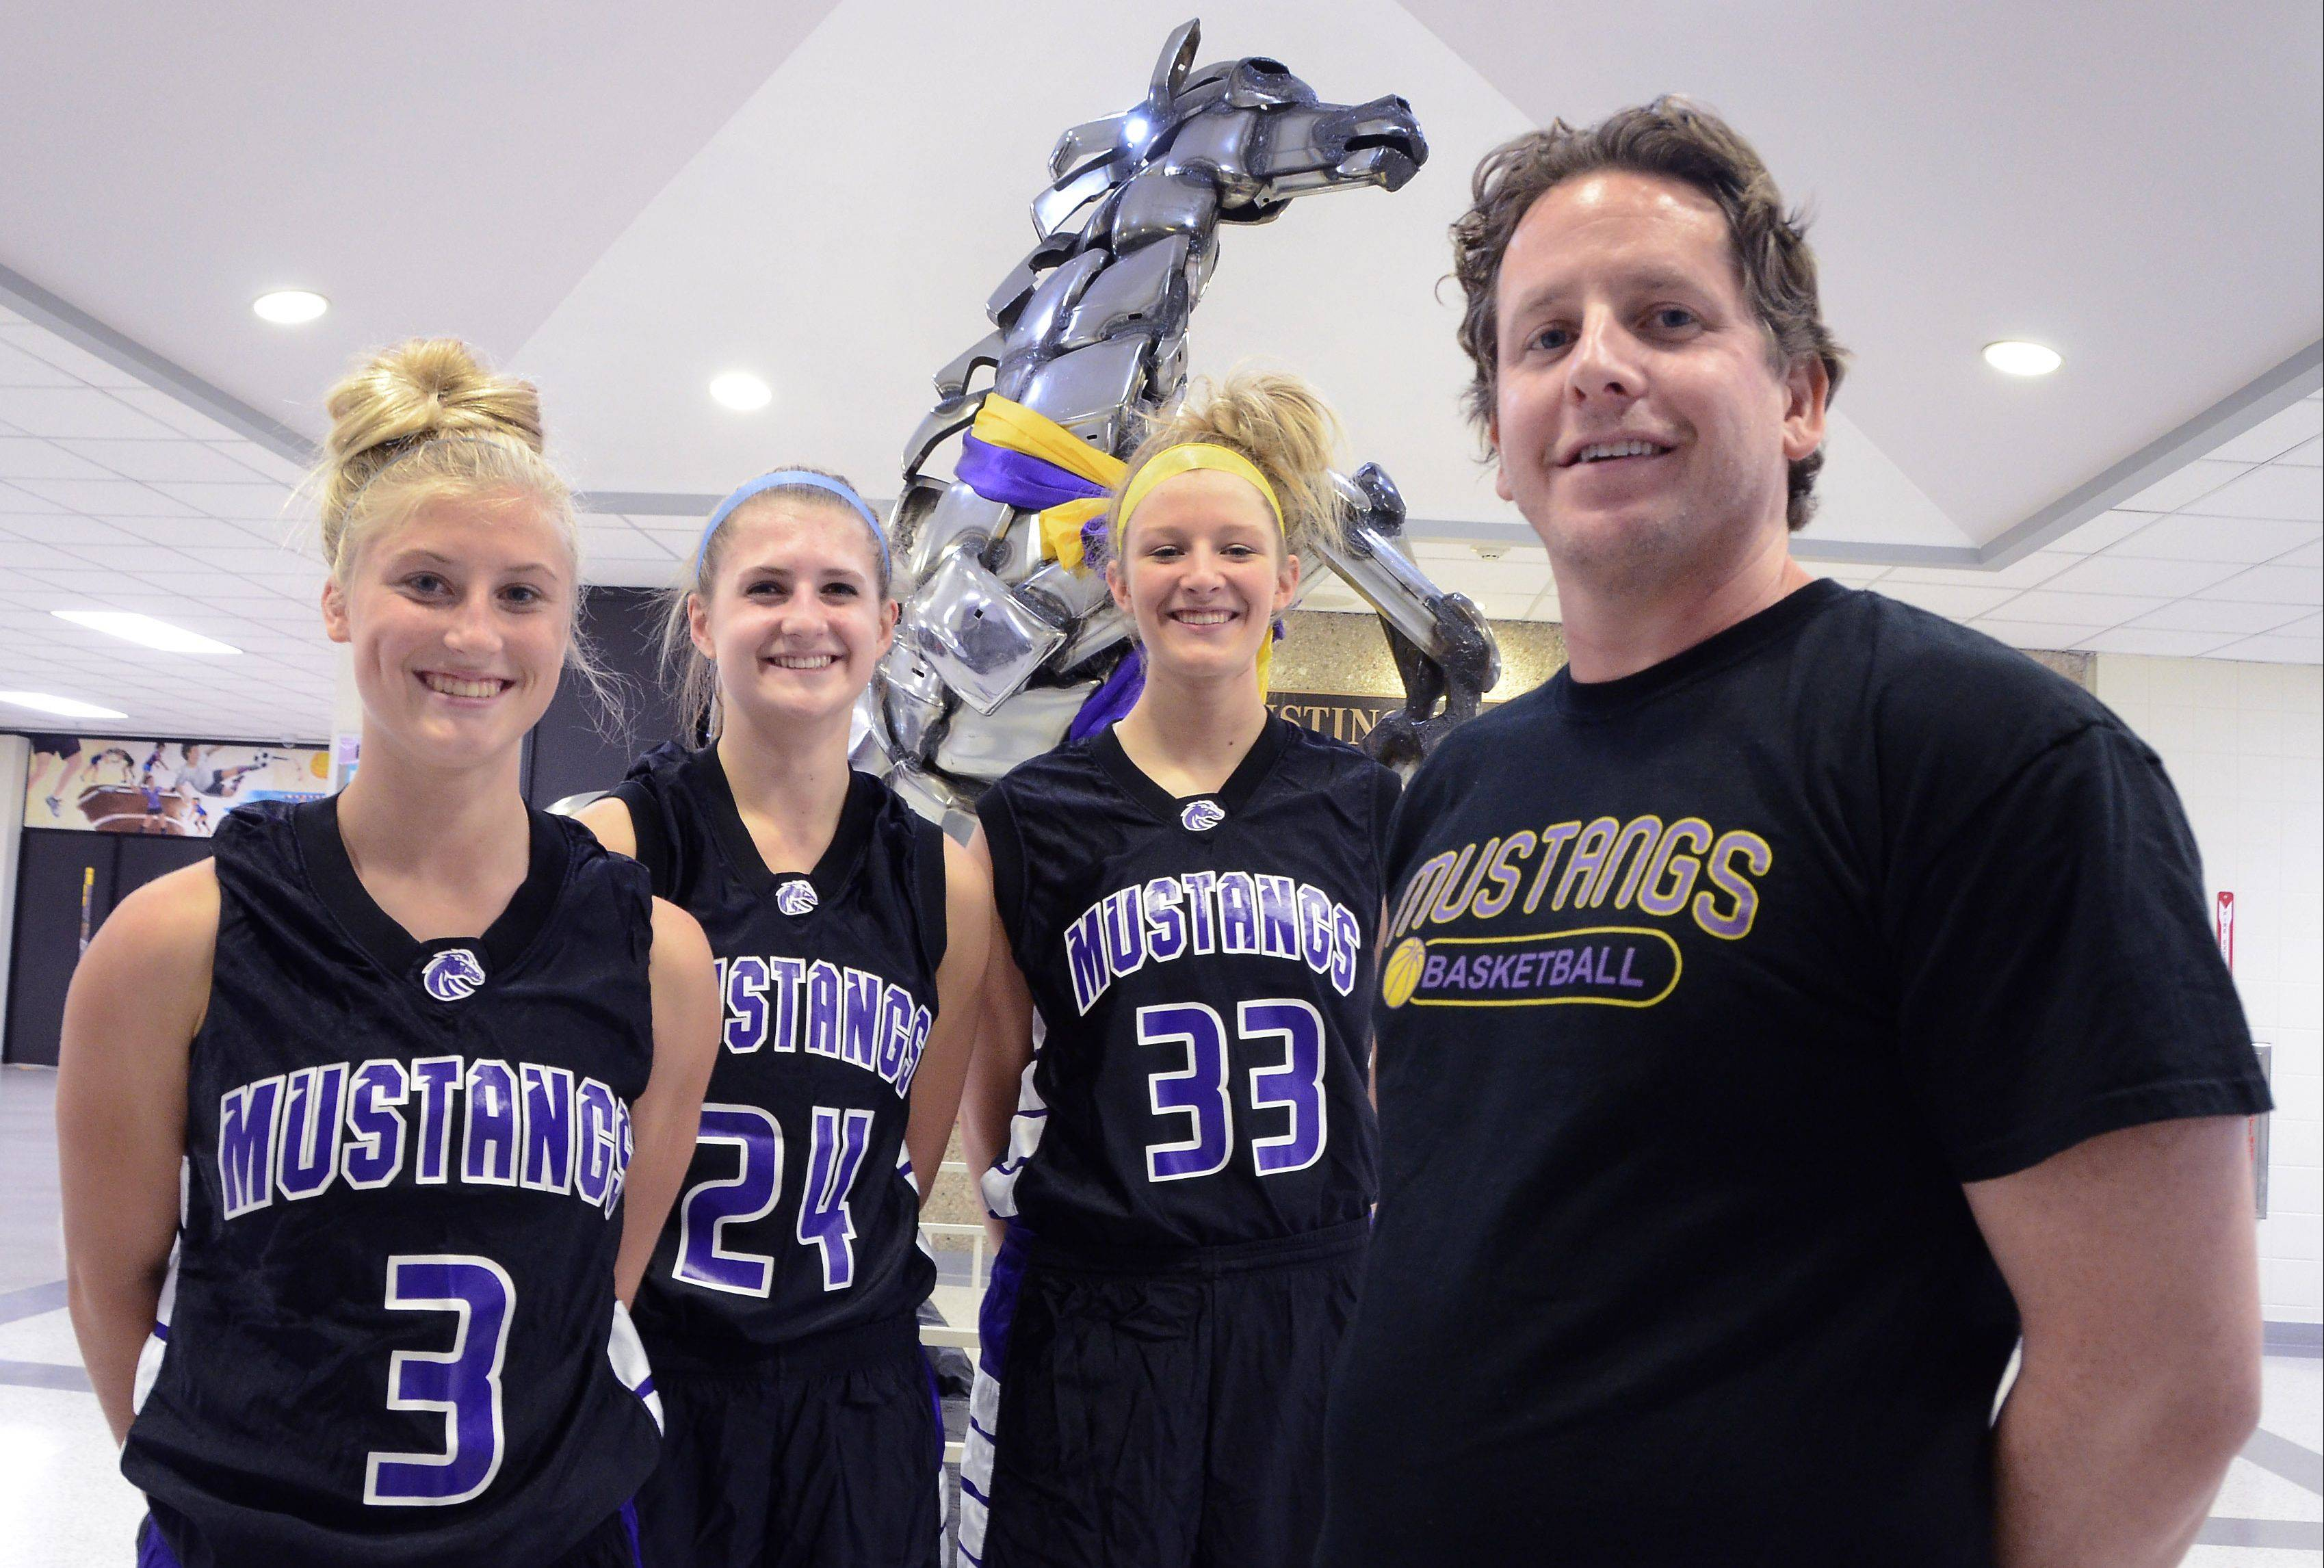 Jackie Kemph, Alexis Glasgow and Jenny Vliet, all juniors drawing attention from NCAA Division I programs, have a new coach who until recently was trying to figure out how to defeat them, Ryan Kirkorsky.